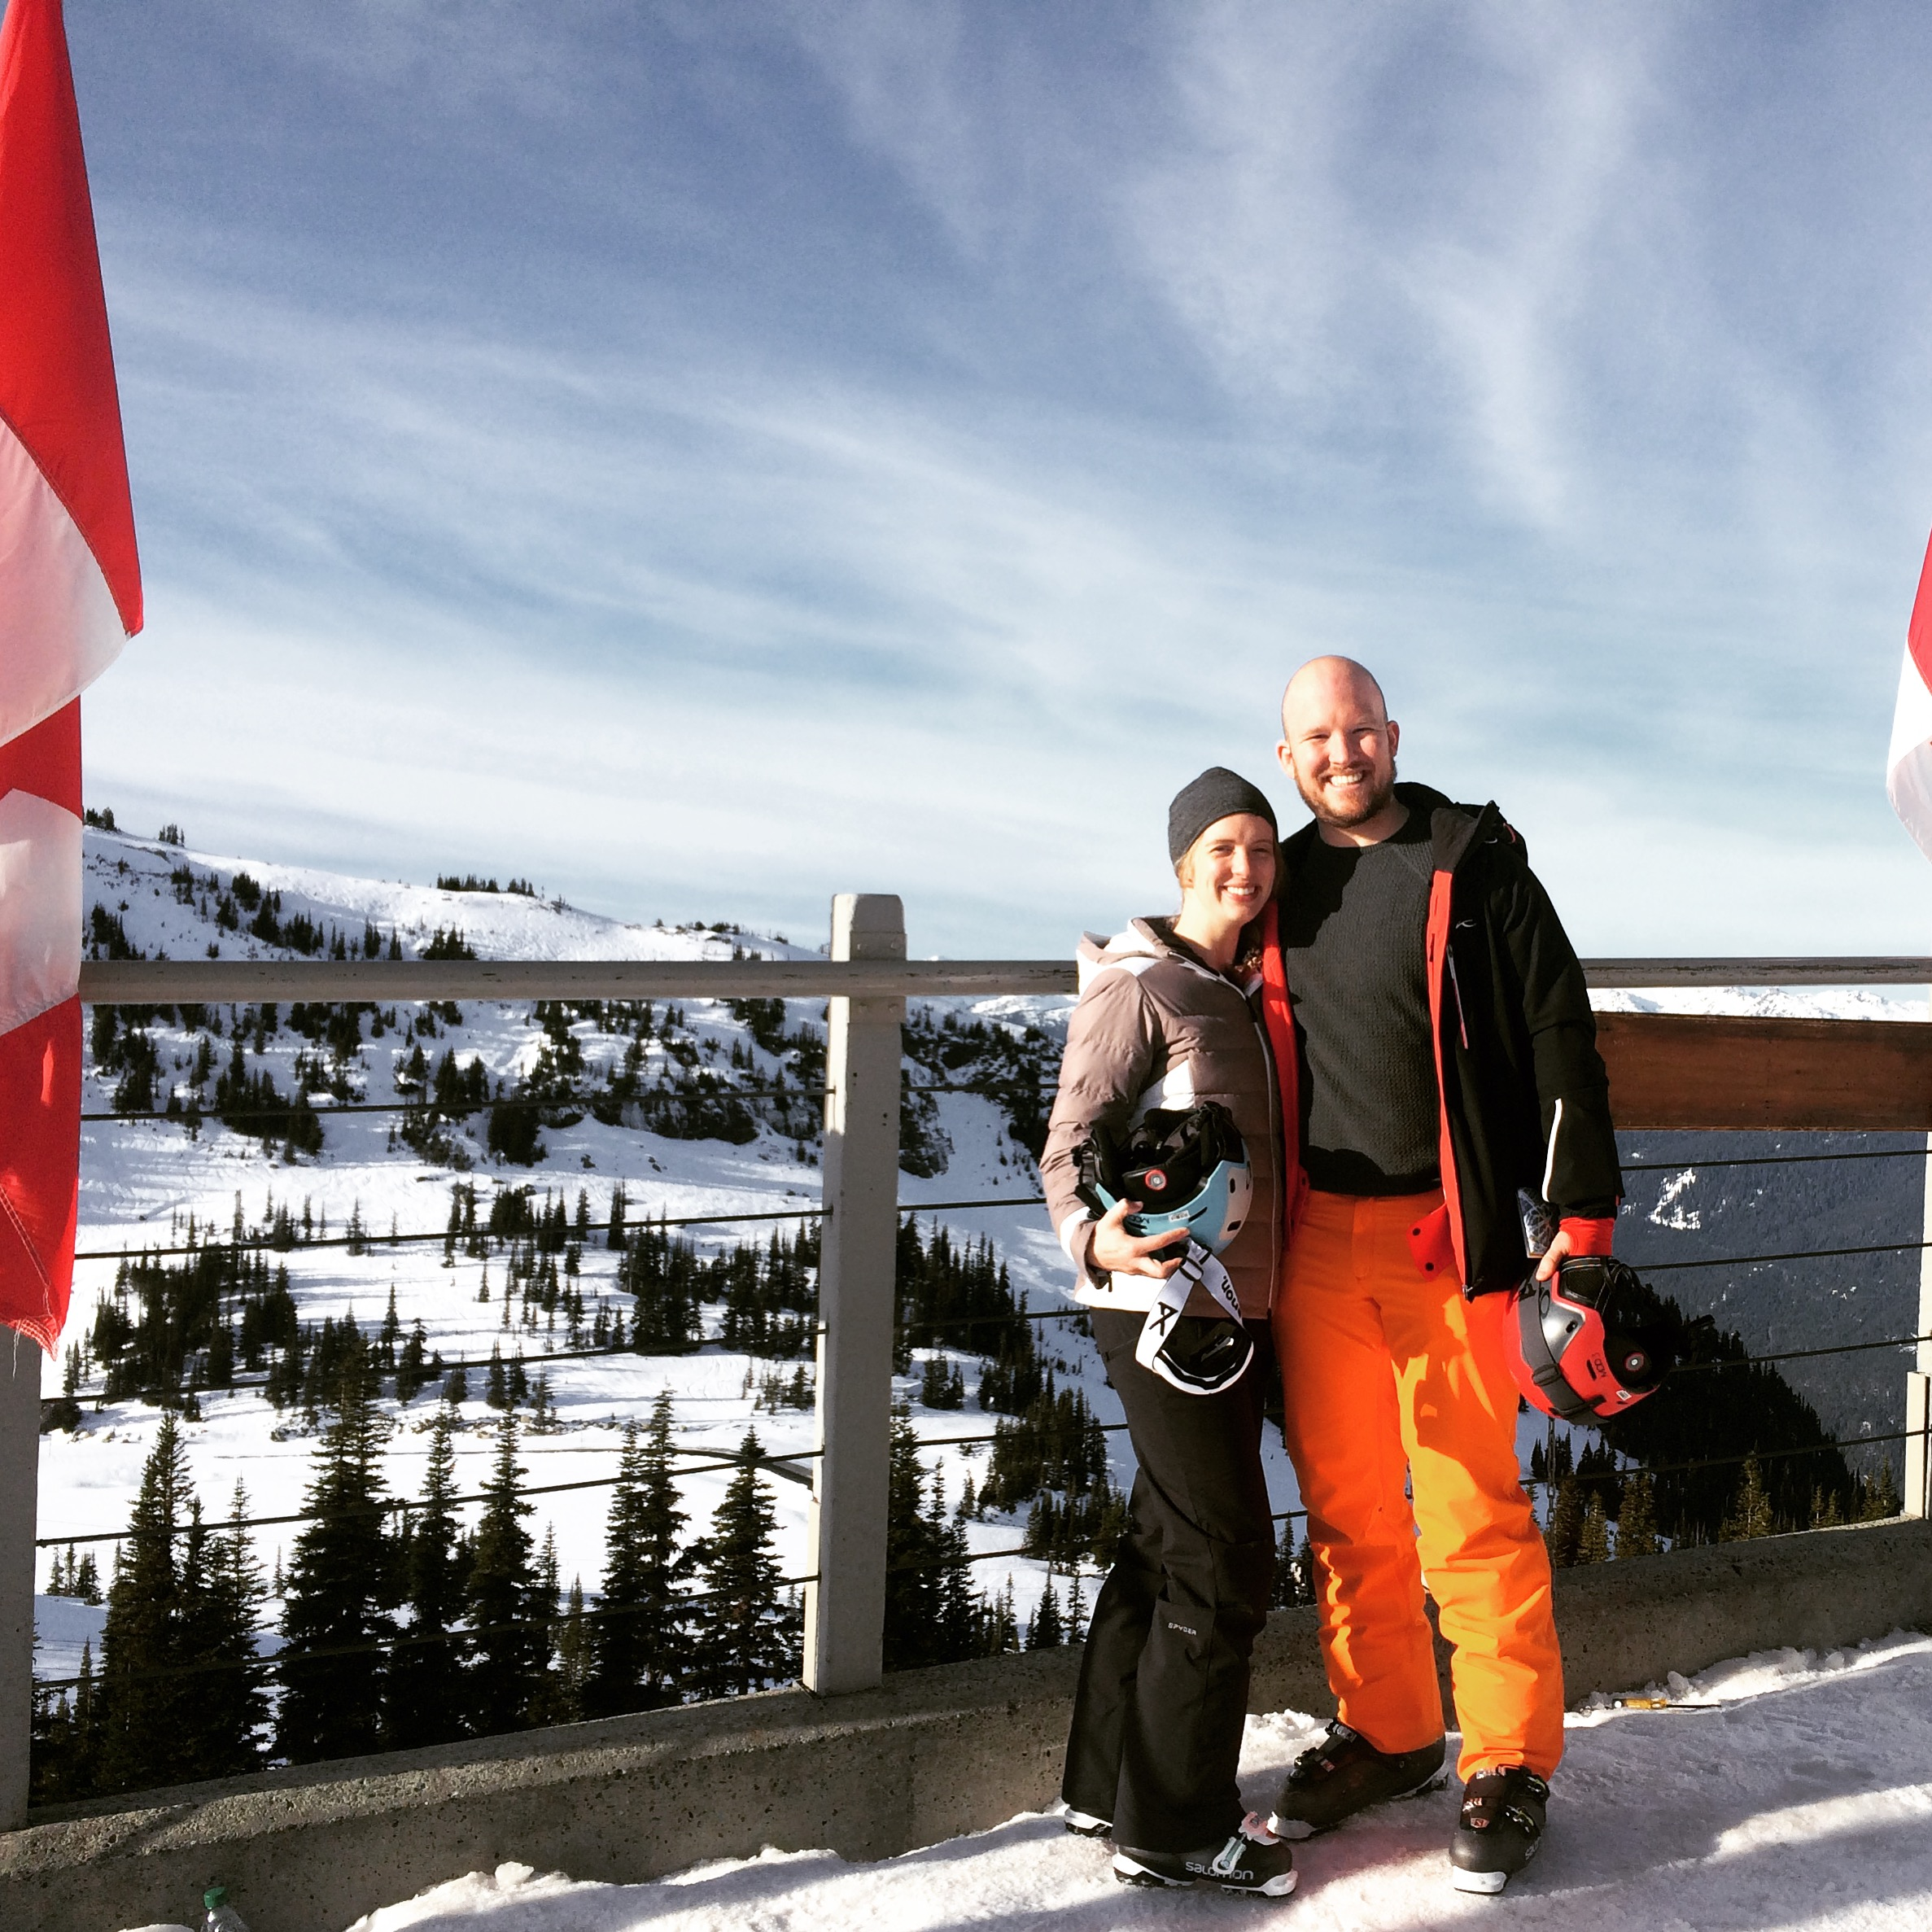 Clare and I in Whistler for my birthday.